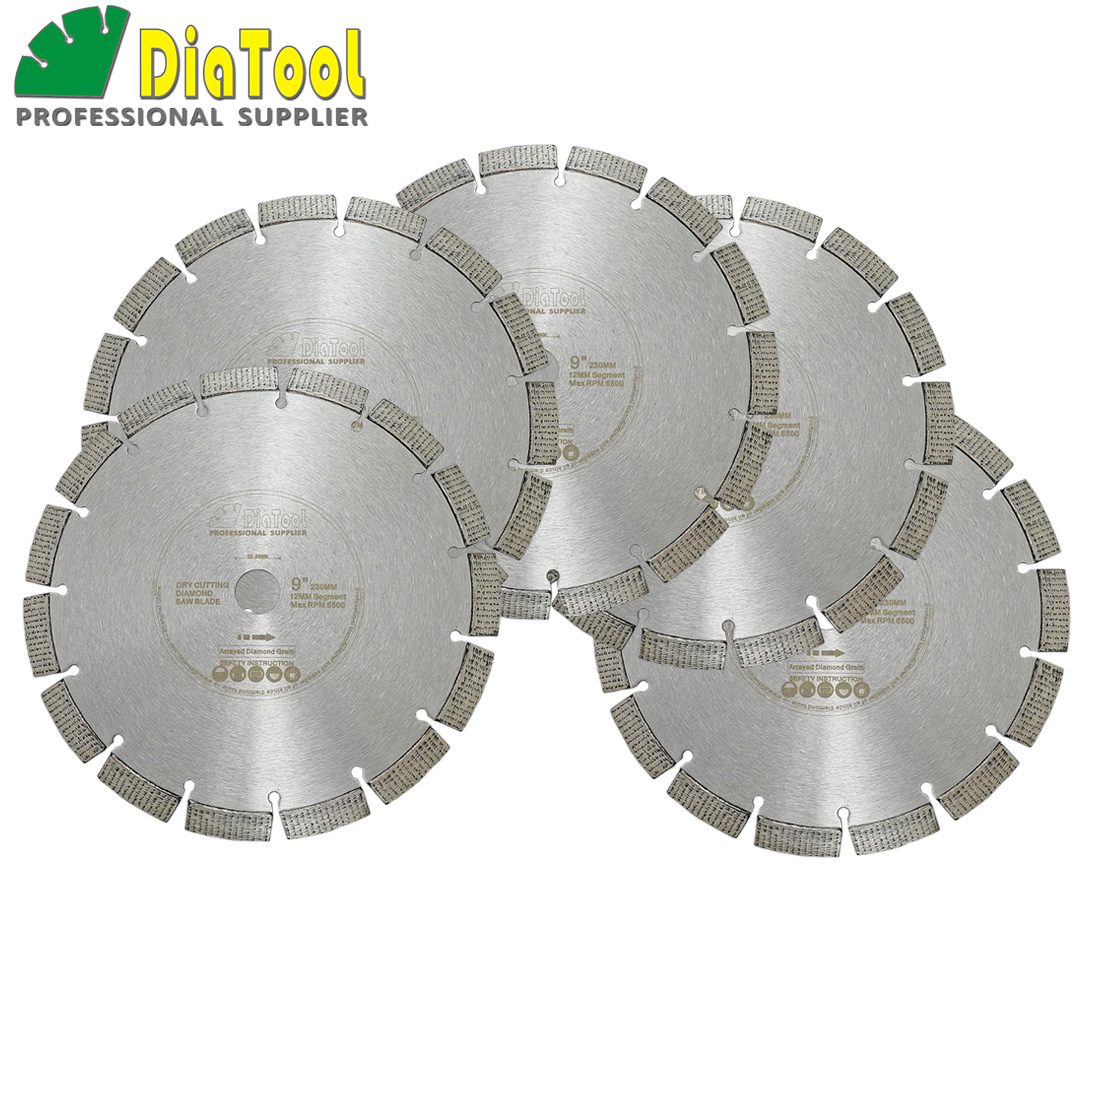 DIATOOL 5pcs 9 Inch Laser Welded Arrayed Diamond Blade Cutting Disc Dia 230mm Saw blades Reinforced Concrete Diamond Wheel Disk цены онлайн